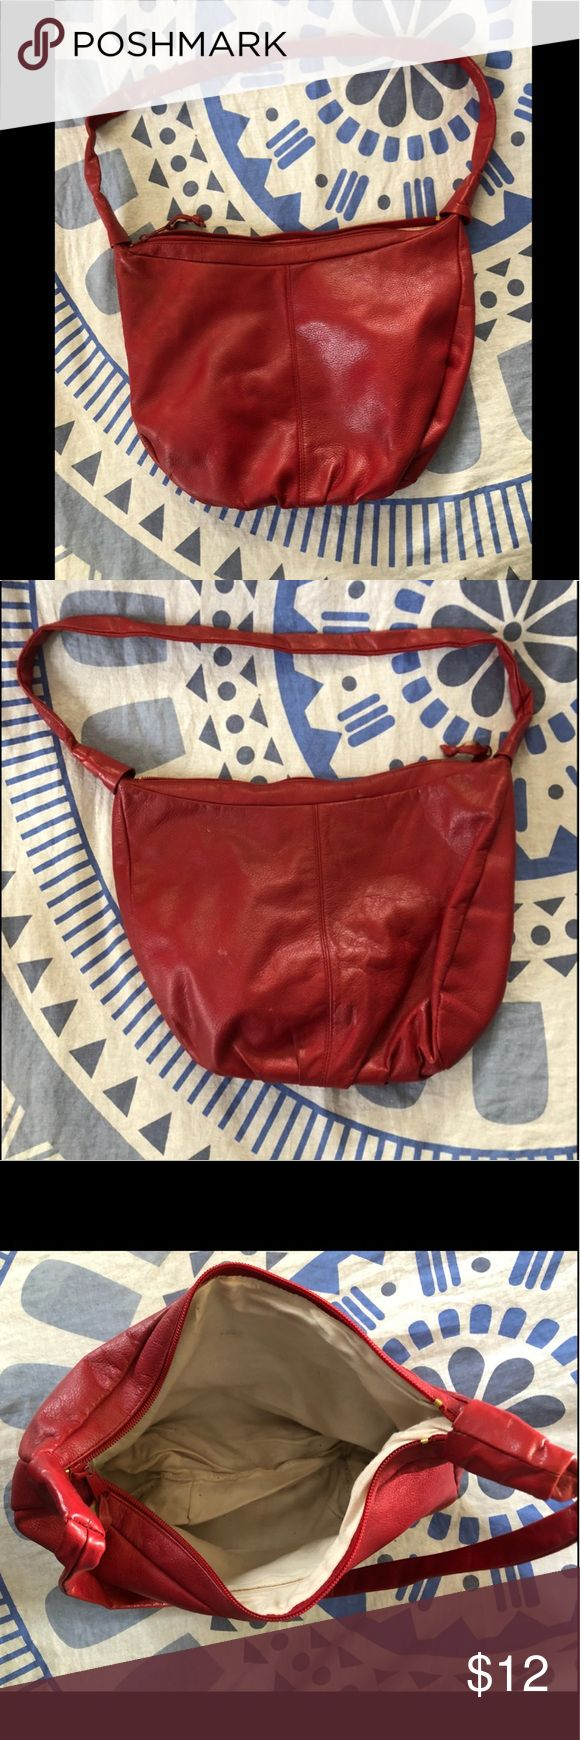 Red Hobo Shoulder Bag Red Hobo Shoulder Bag with interior zippered pocket.  This is a used purse and does show signs of I Love This Purse!!! such as loose trim on outside pocket, some loose strings, scuffs, scratches, wearing and stains. Please review all photos 😀  COMES FROM A DOG AND SMOKE FRIENDLY HOME. Bags Hobos